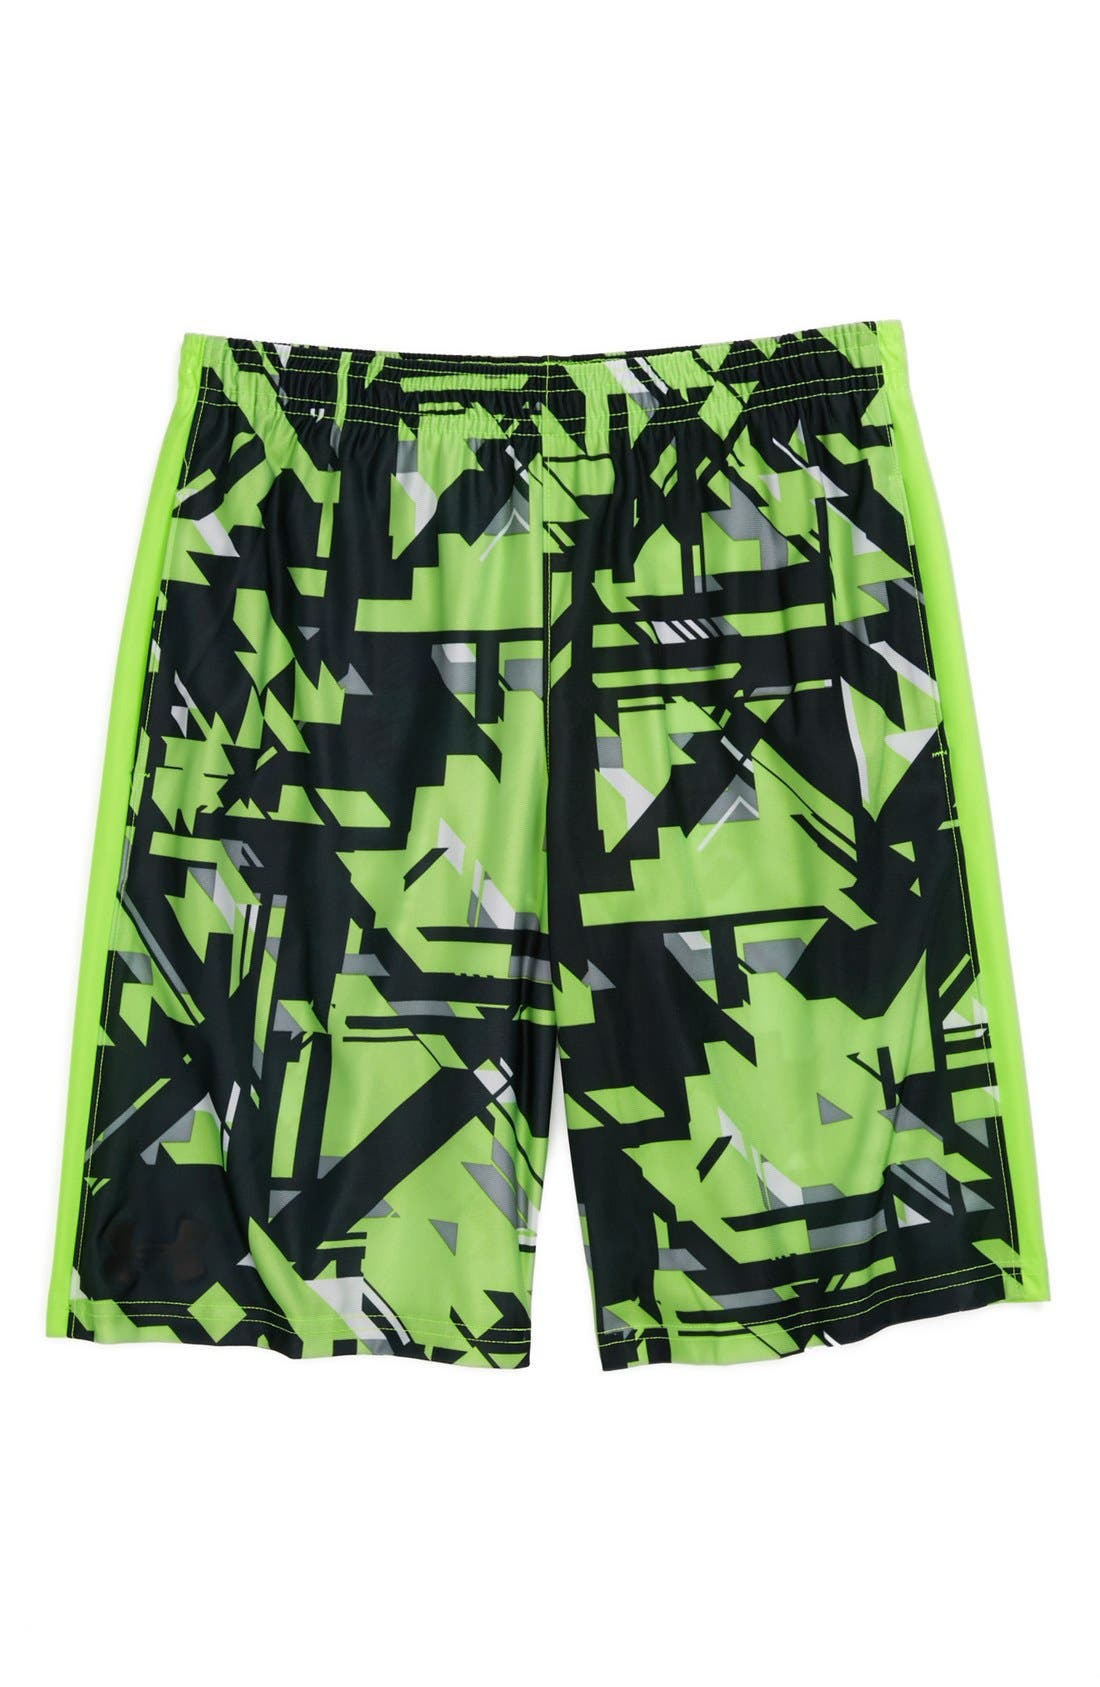 Alternate Image 1 Selected - Under Armour 'Ultimate' Shorts (Big Boys)